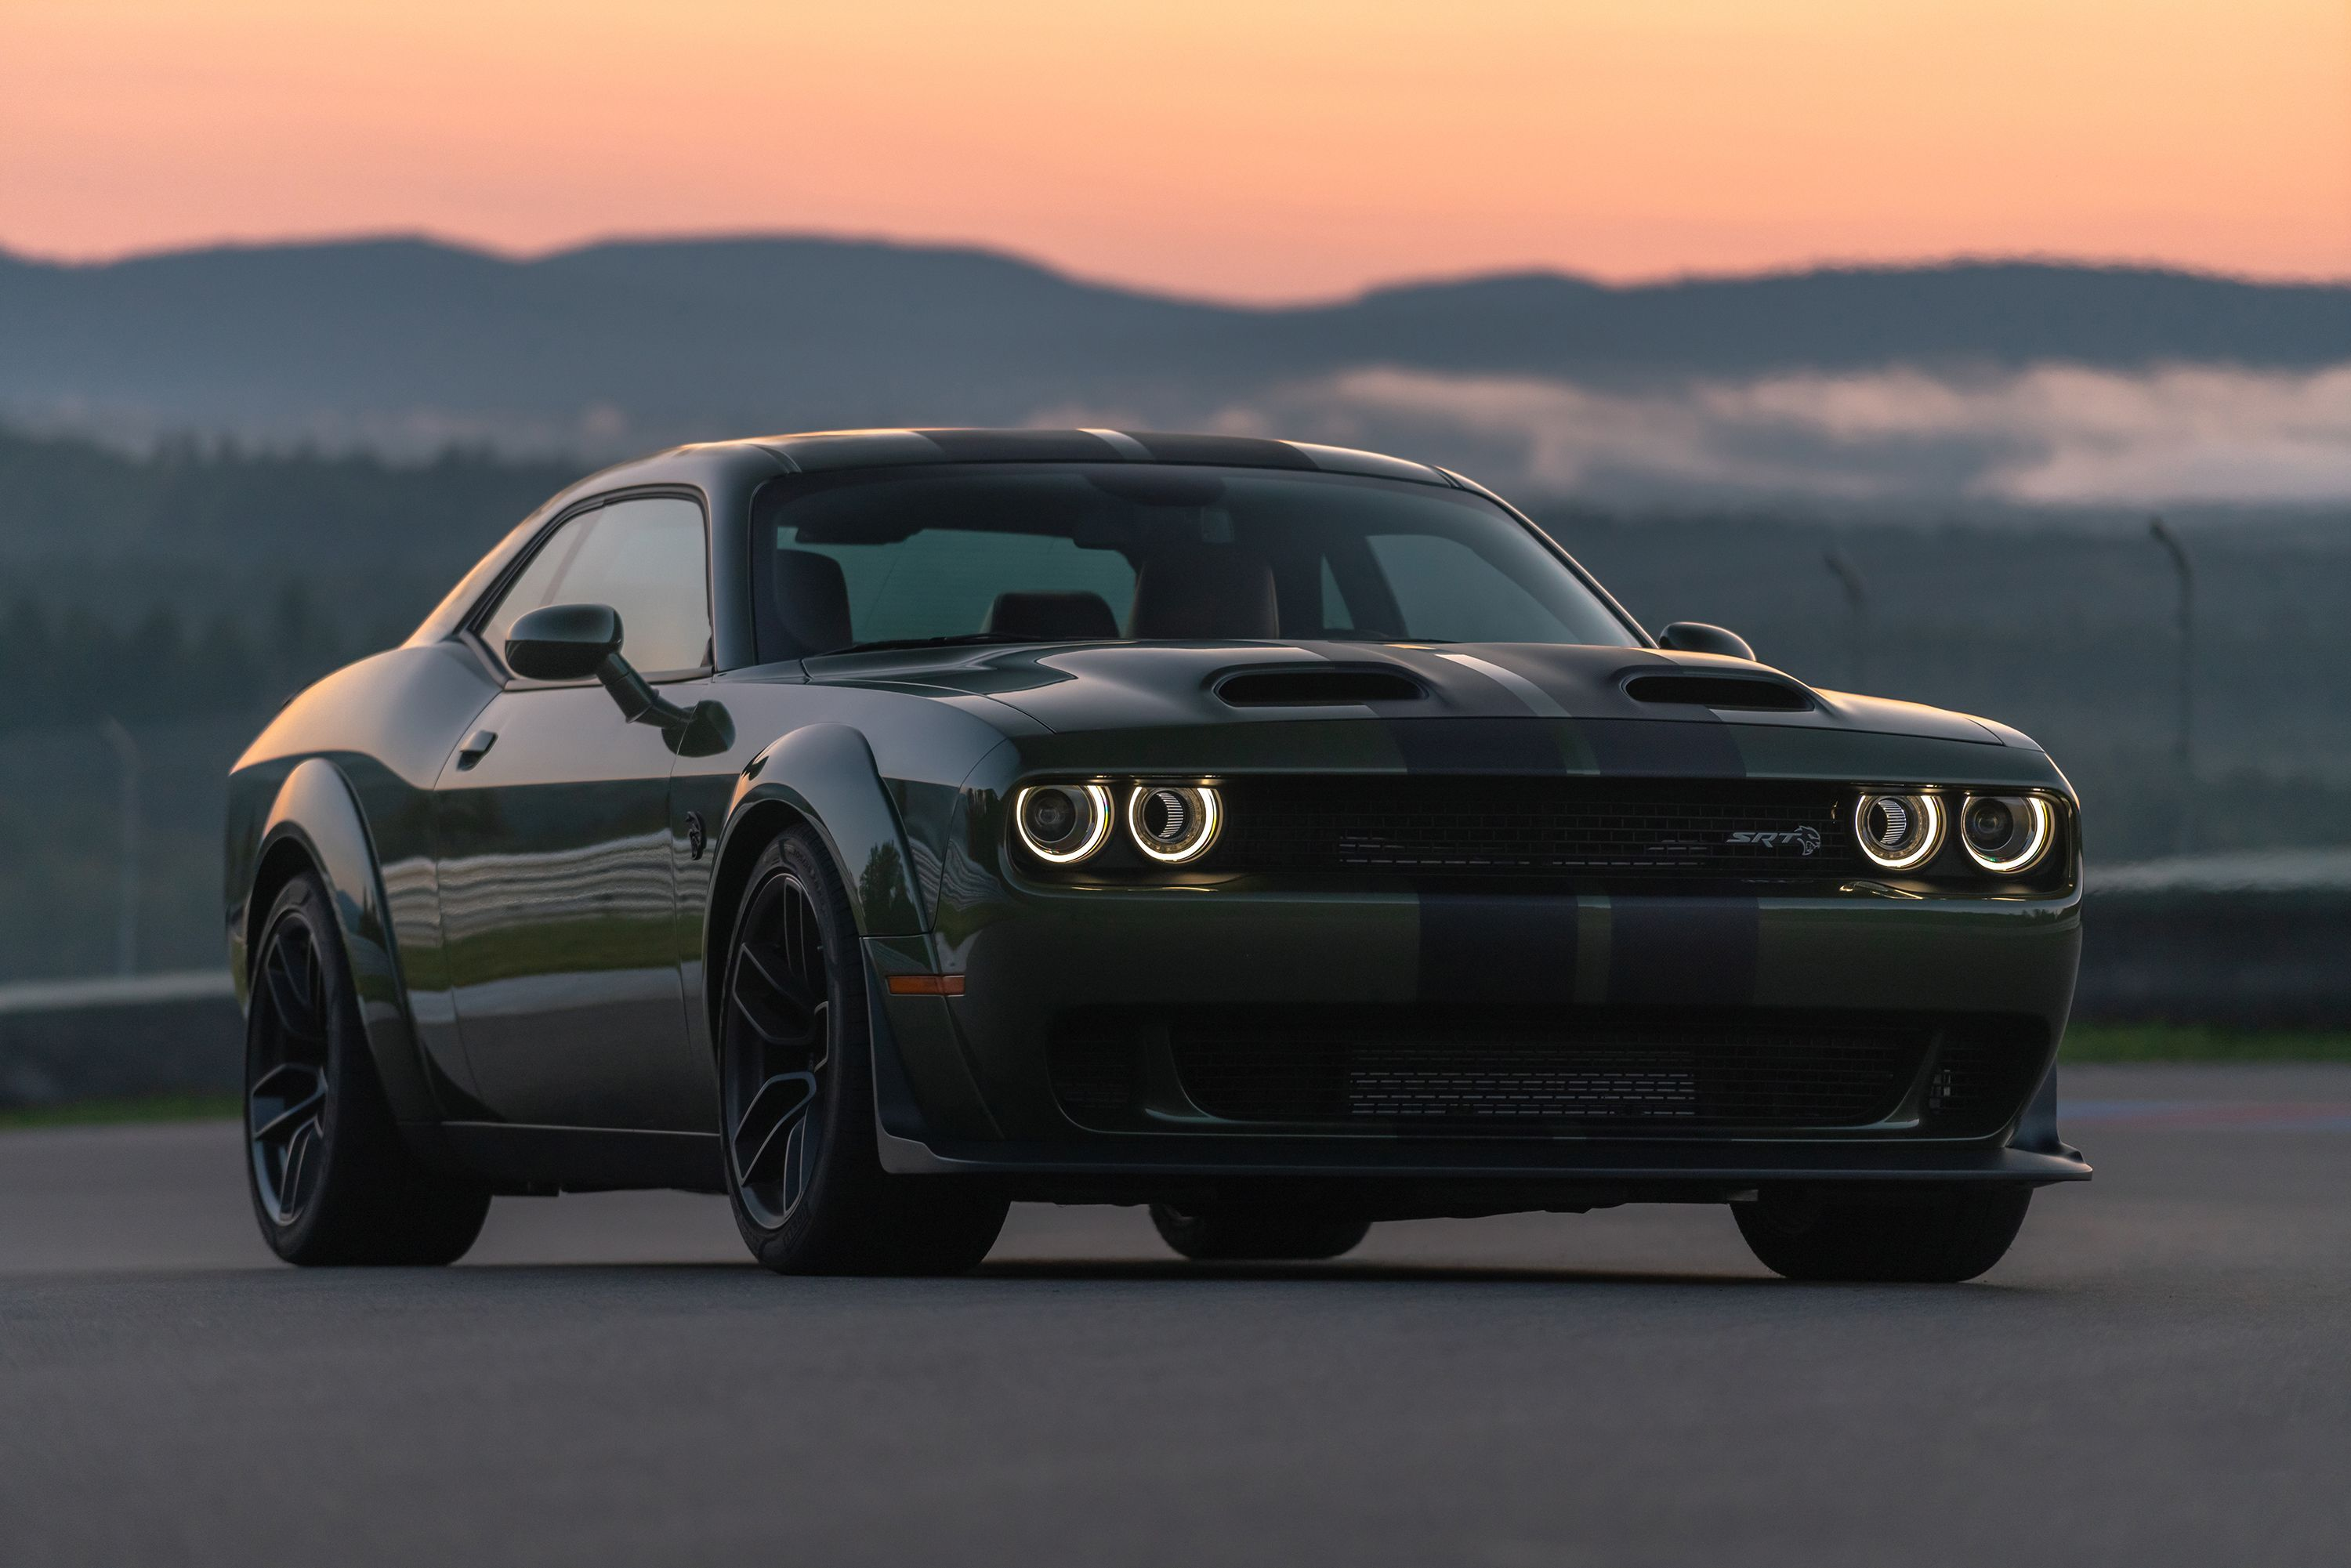 Dodge Launches Srt Hellcat Redeye Charger The World S Fastest Sedan And It S Intoxica Dodge Challenger Hellcat Dodge Challenger Srt Hellcat Hellcat Challenger